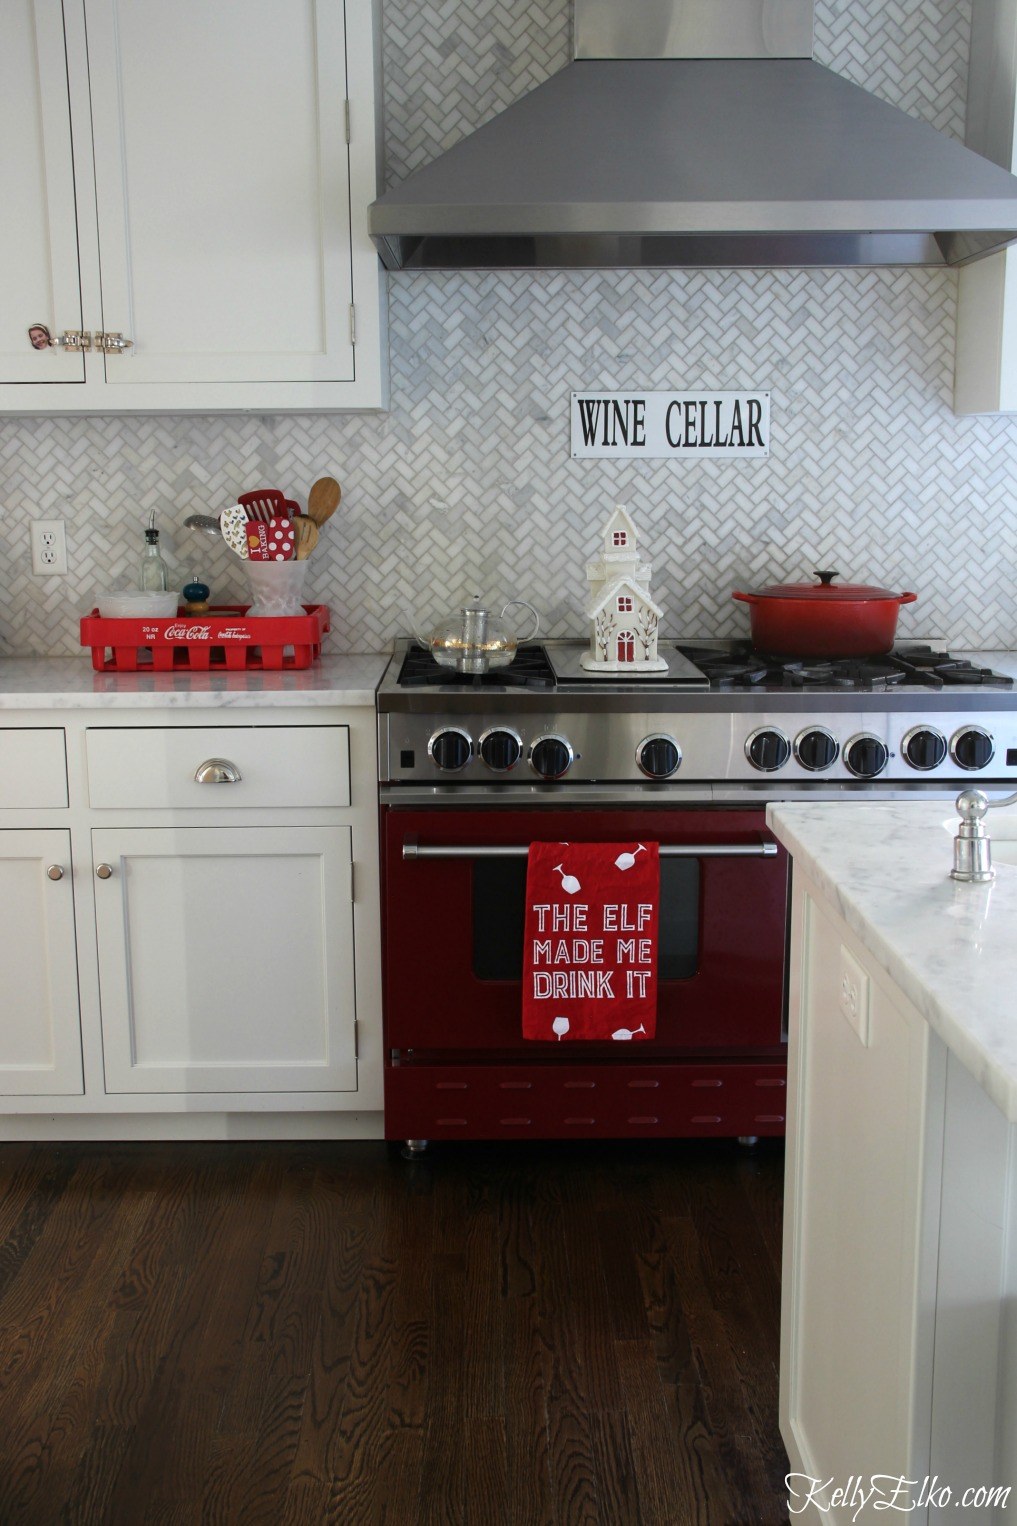 Christmas Kitchen - love the red stove and touches of red for a festive look kellyelko.com